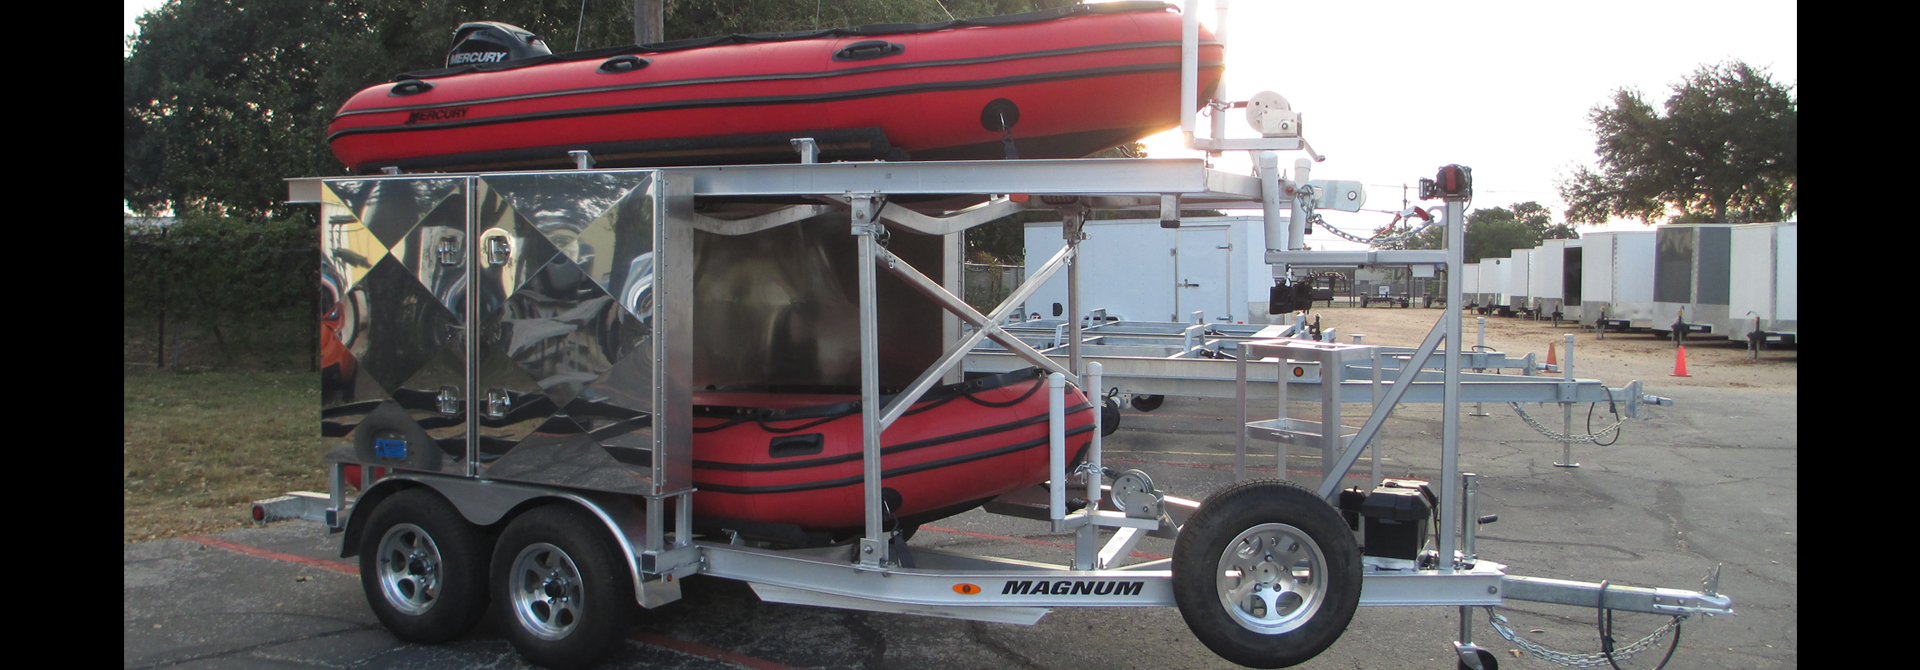 Home Magnum Trailers Performance Pj Wells Cargo Top